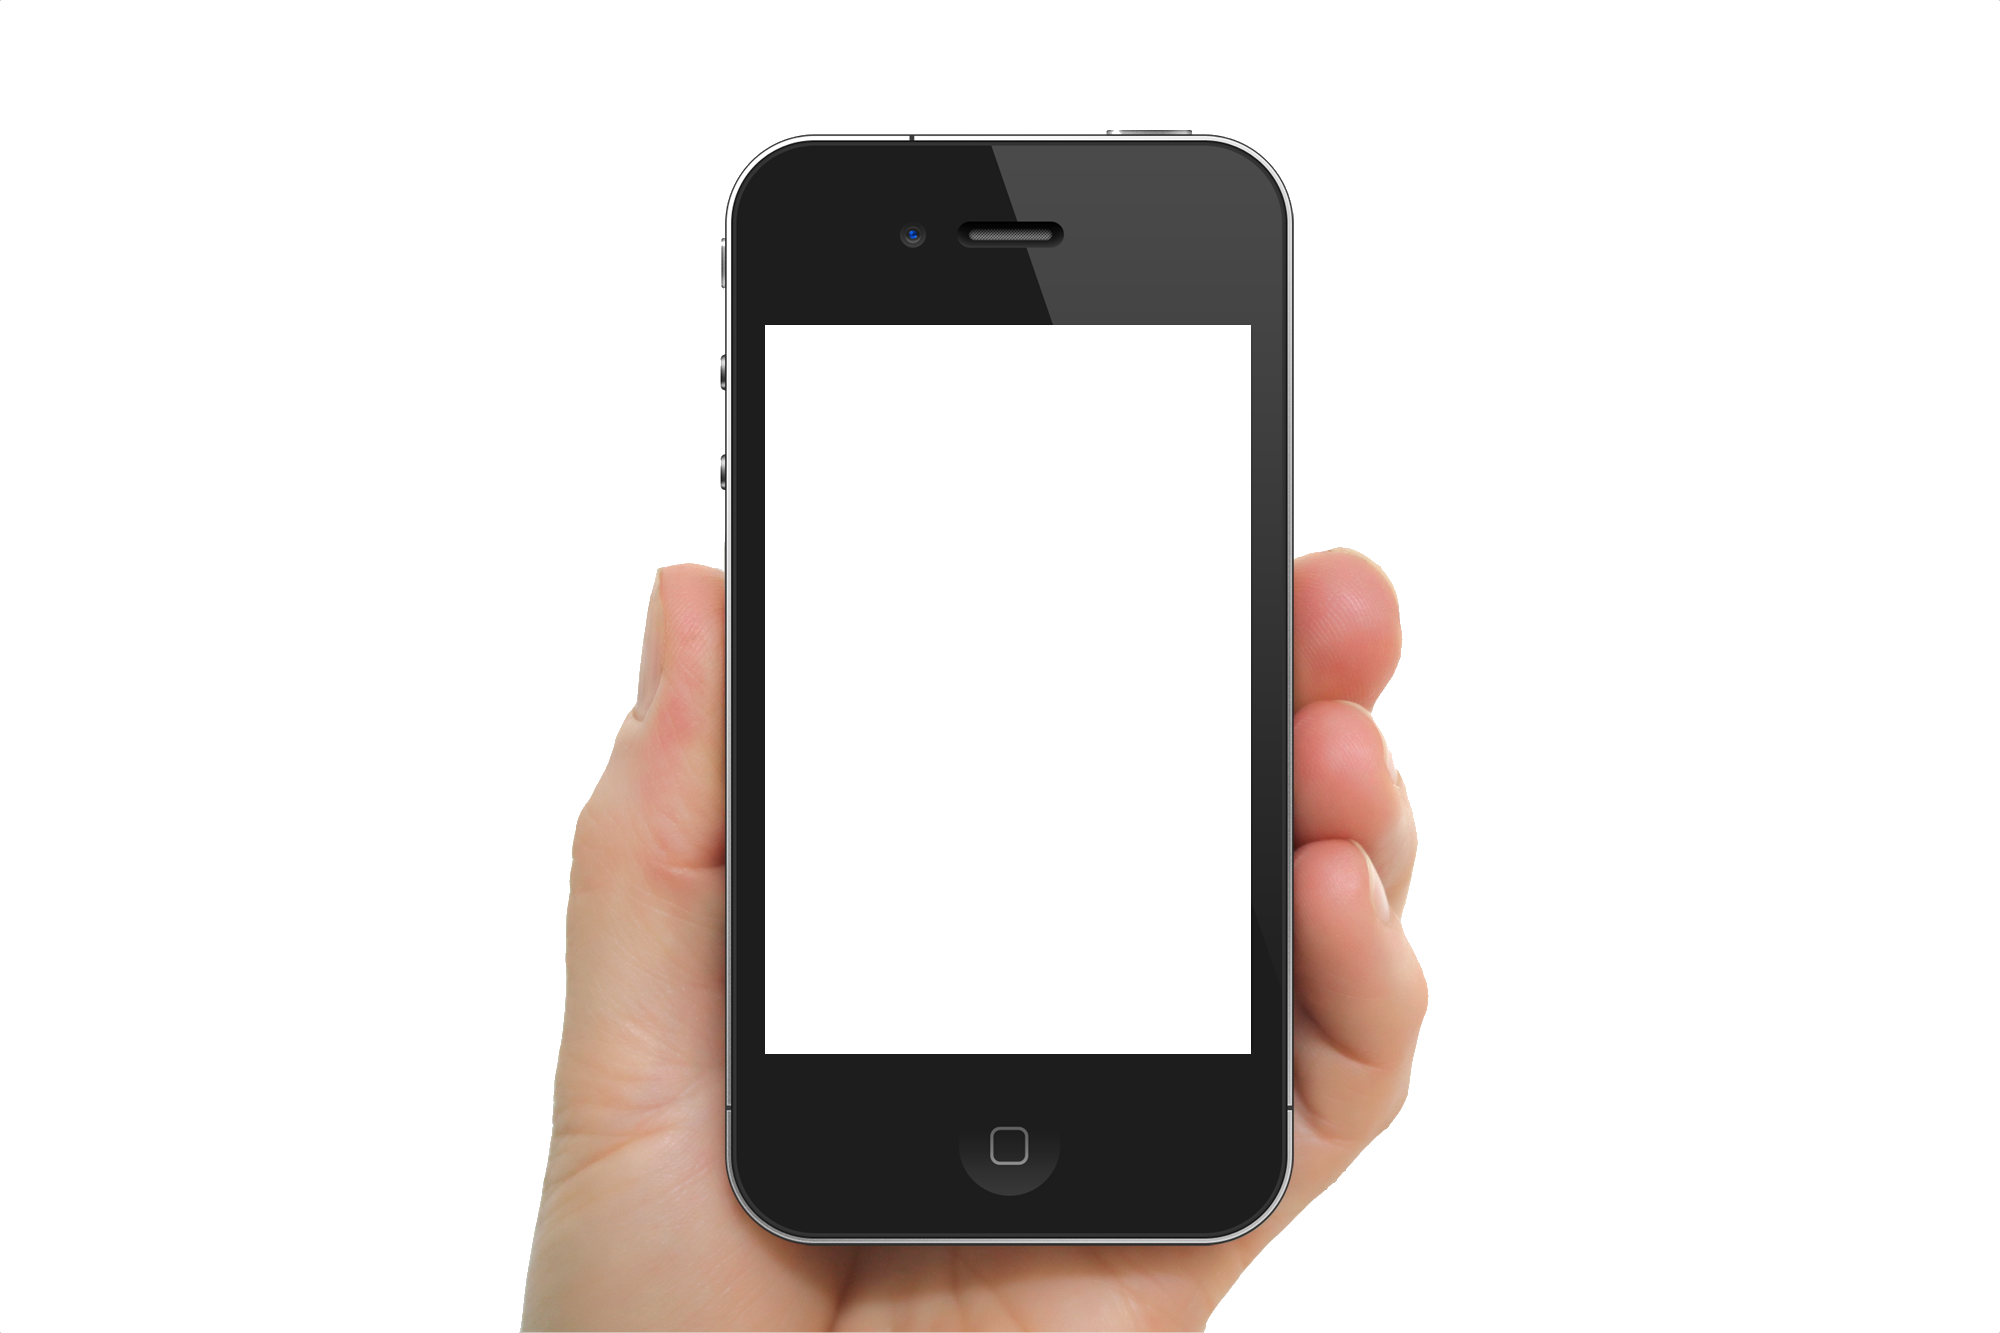 mobile hand png transparent mobile hand images #9789